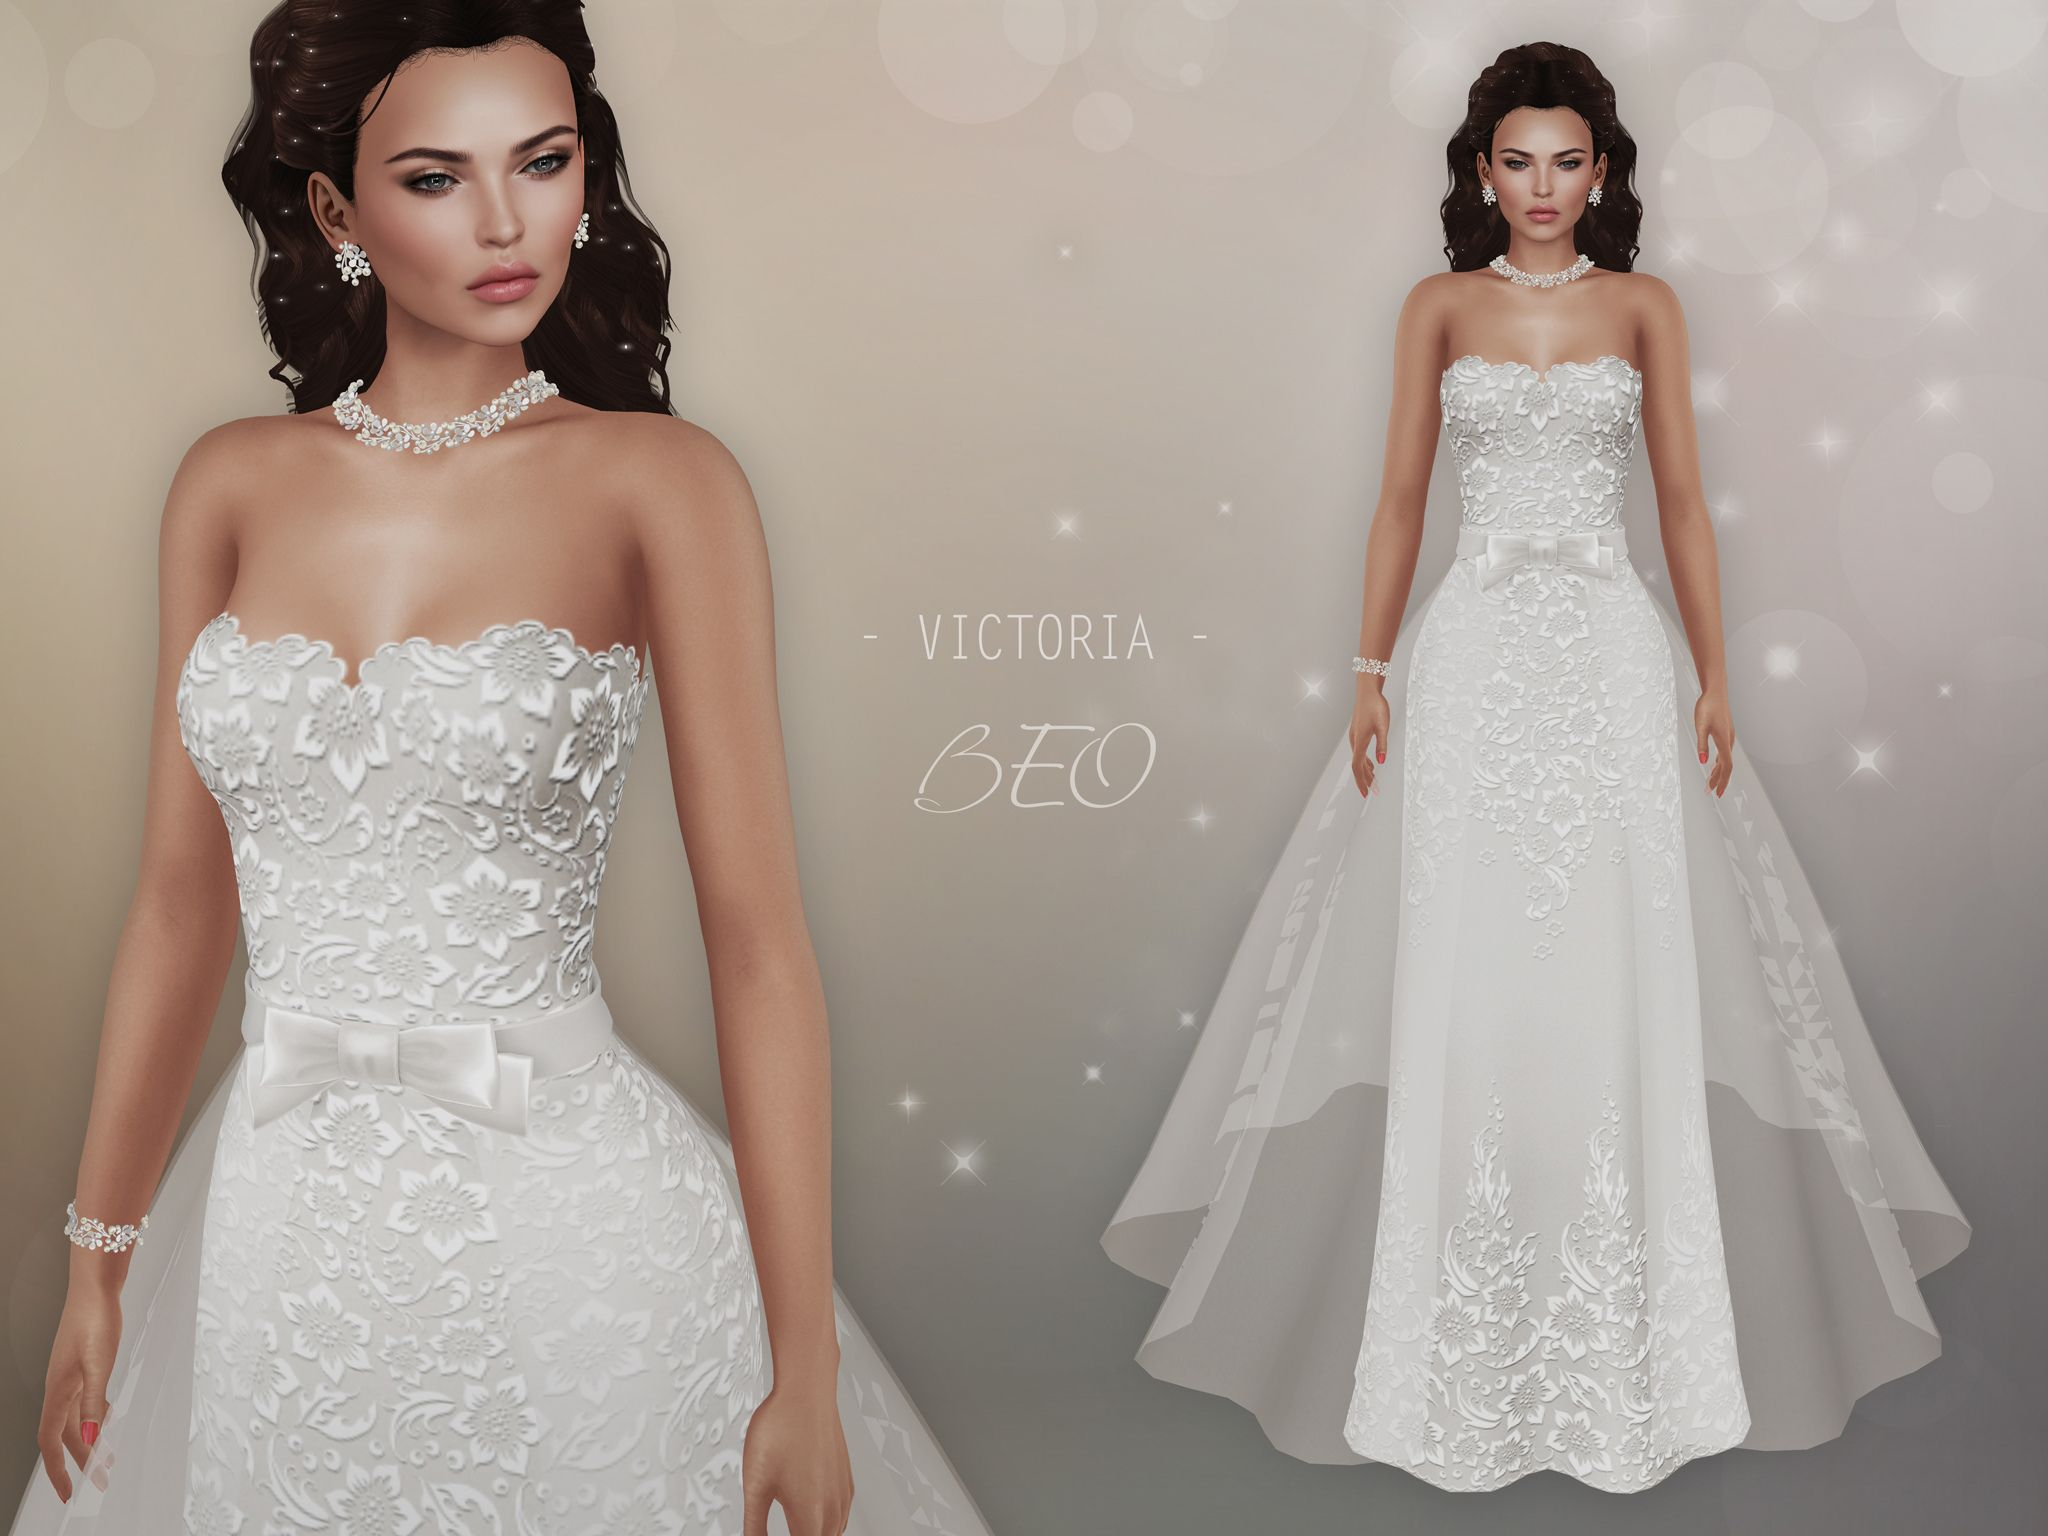 BEO – Victoria wedding gown